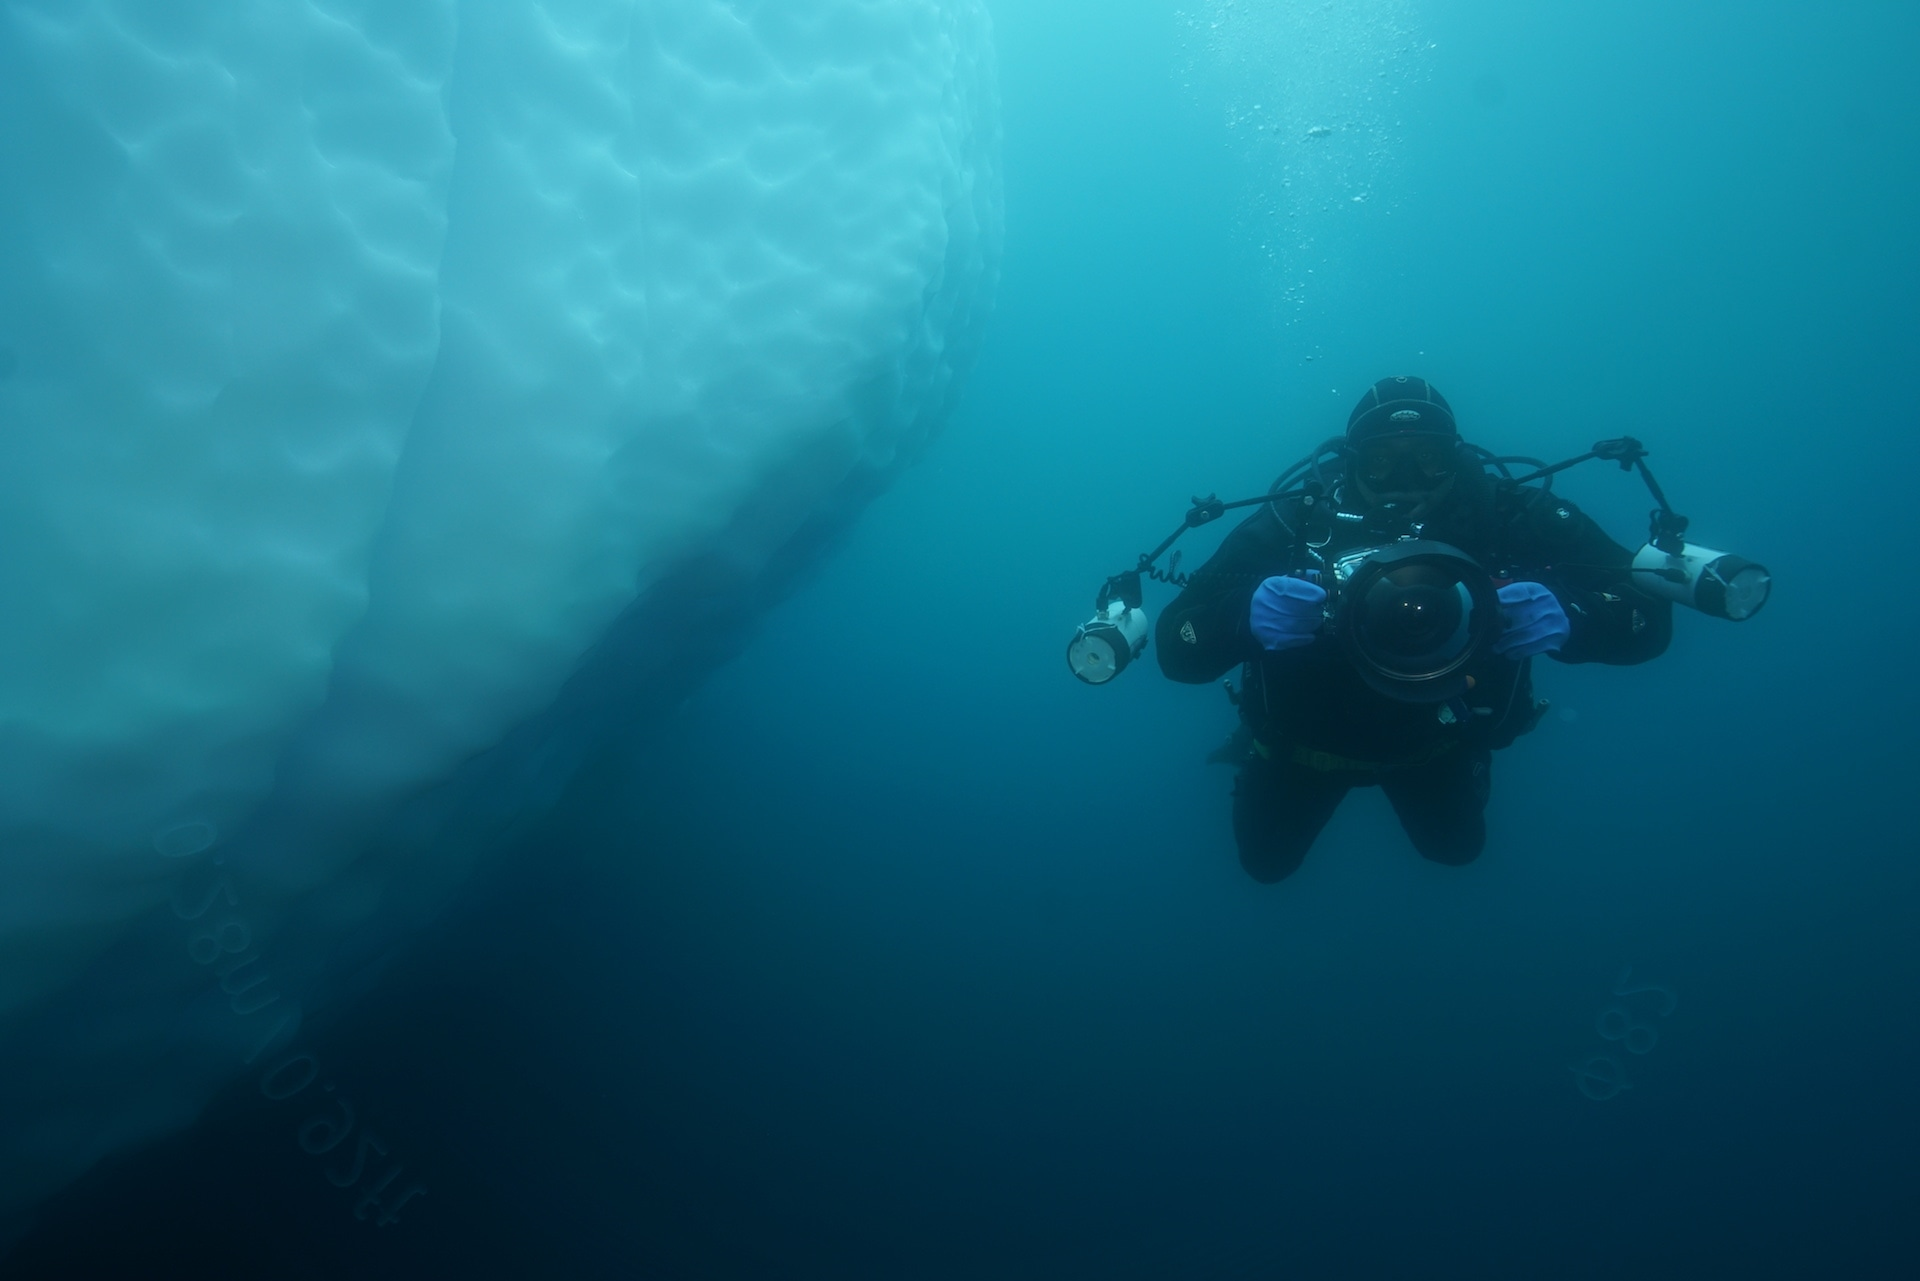 FROM THE FIELD: Dhritiman Mukherjee in full gear: thermals, dry suit, gloves, face mask, air tanks, camera, and strobe lights. In addition, he is also carrying 17 kilos of lead weights on his belt, to counter the additional buoyancy from the gear.